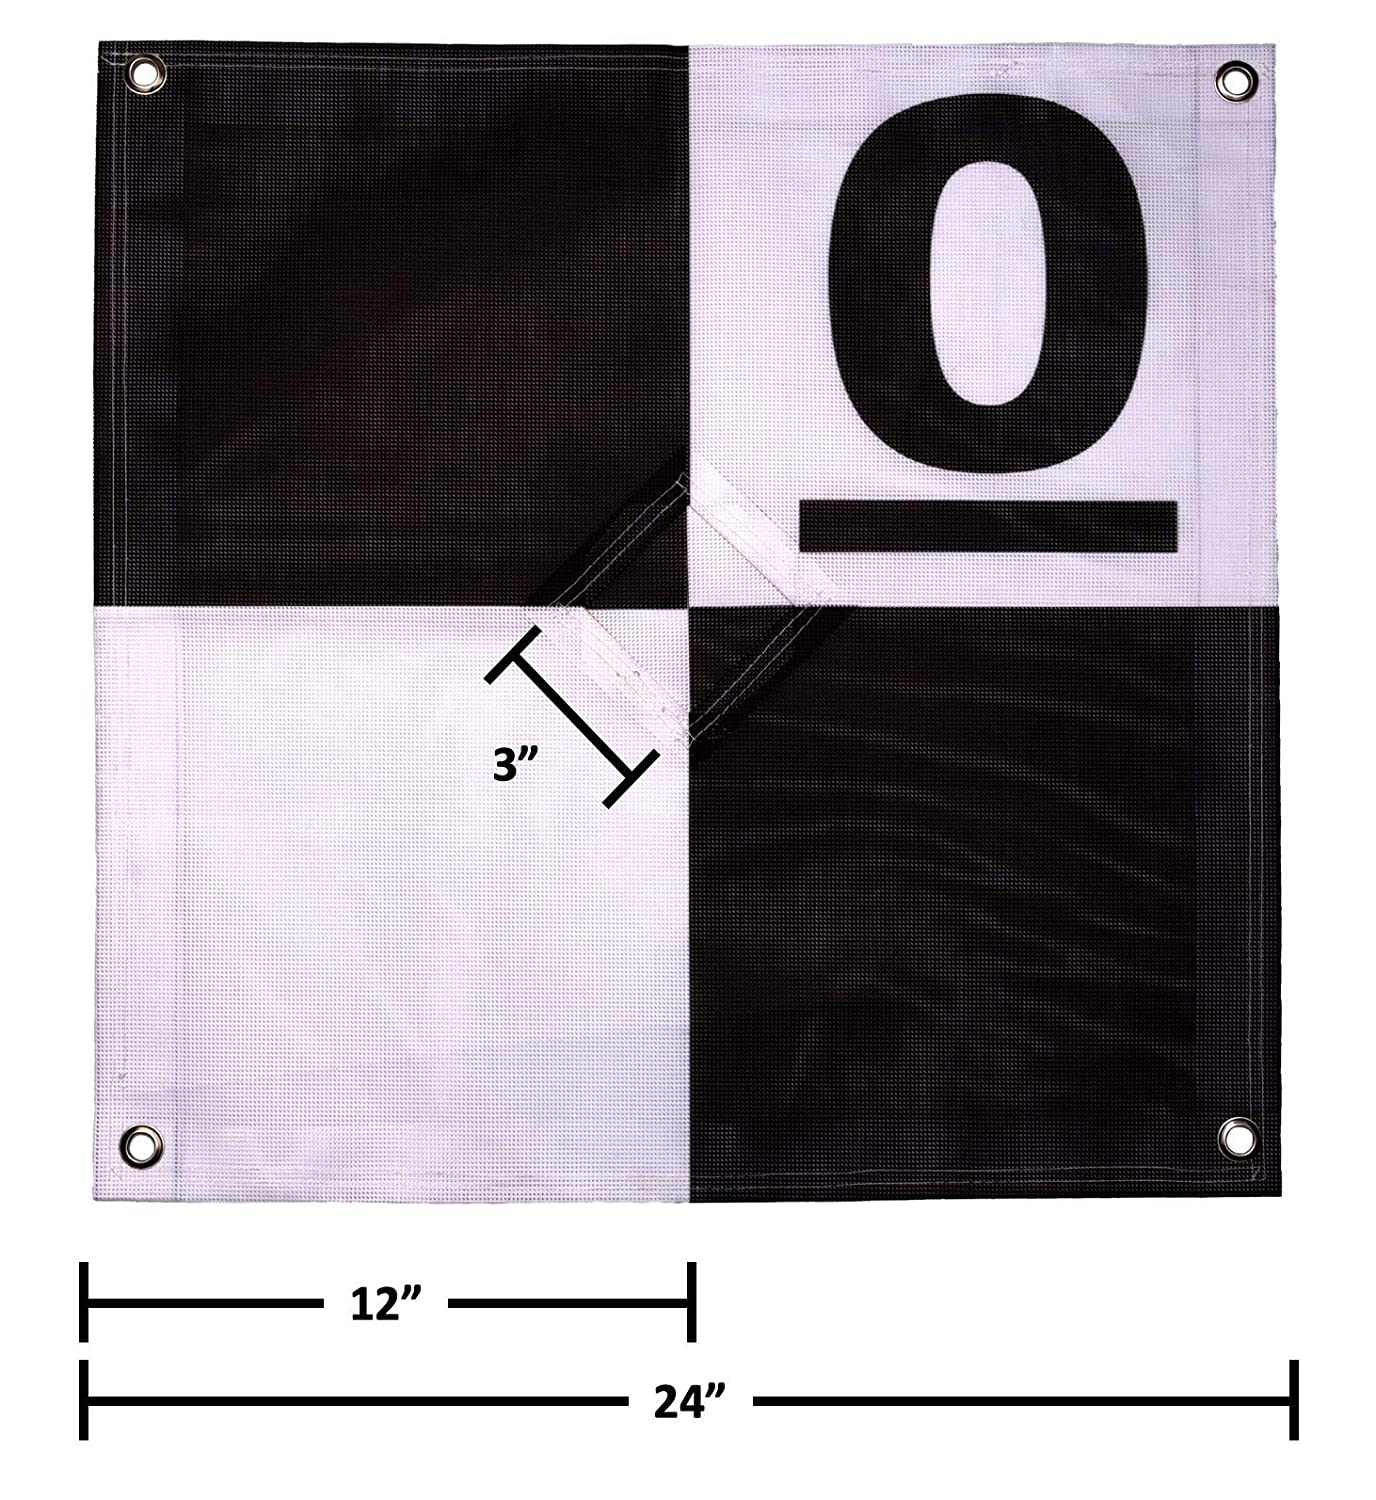 UAV Ground Control Points (GCPs)/Aerial Targets for Aerial Mapping &  Surveying (10 Pack) with Center Passthrough Numbered 0-9 (Black & Grey)